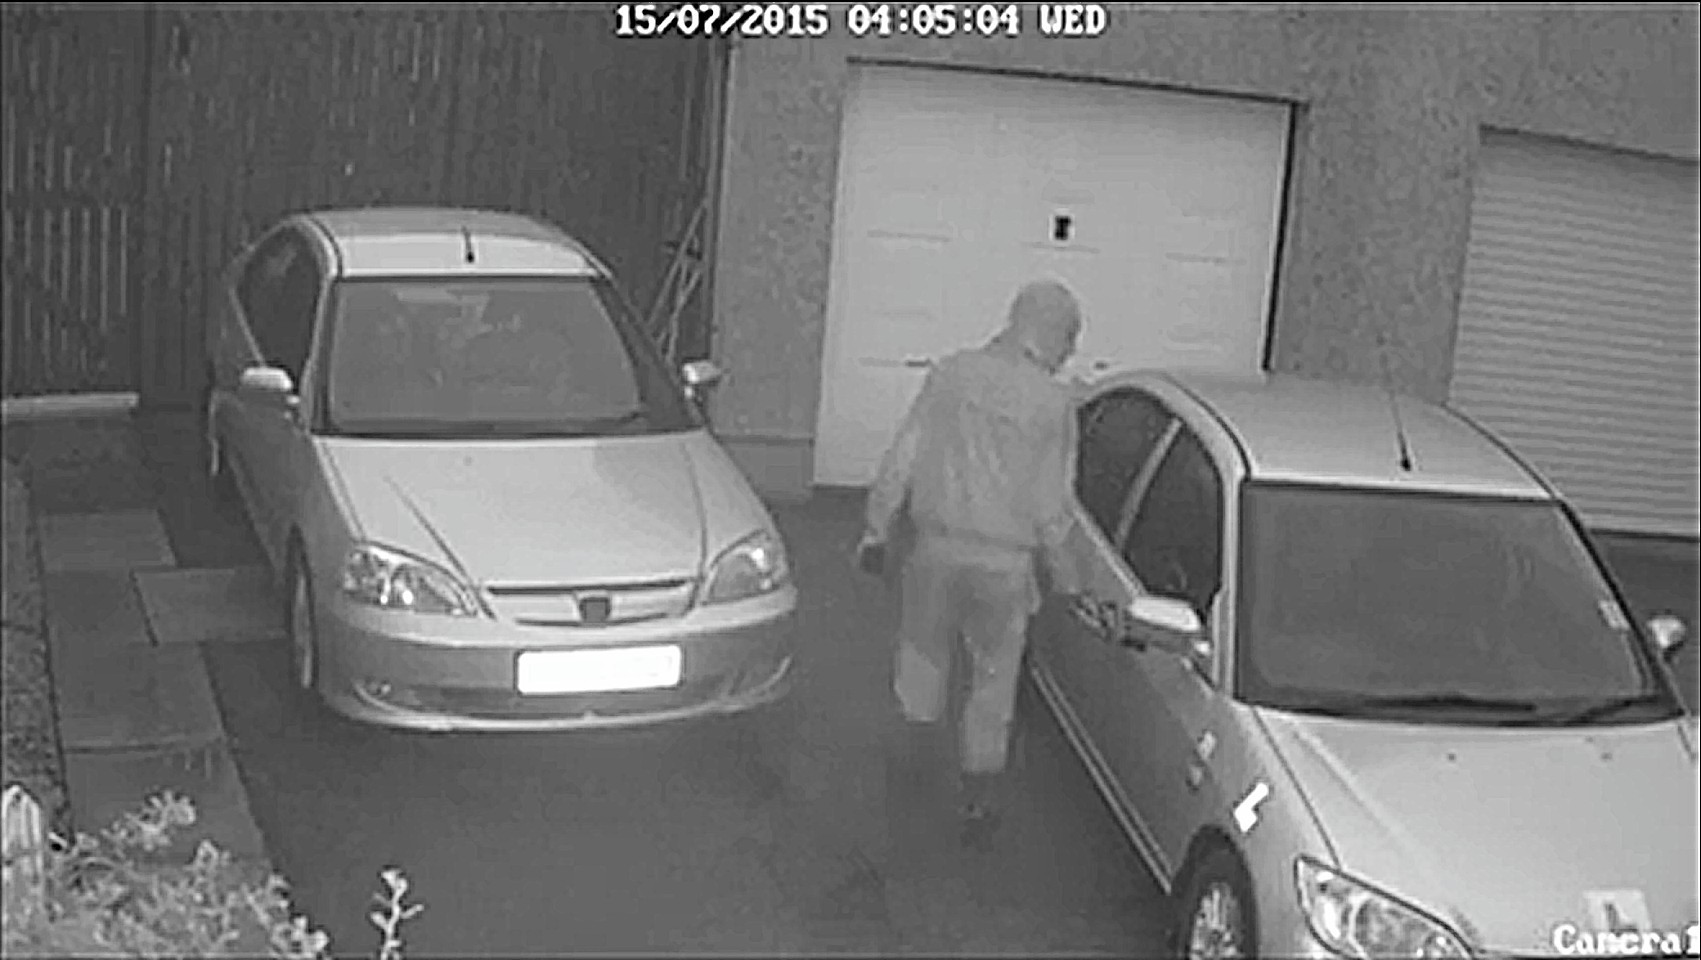 CCTV screen grabs of two prowlers trying the doors of cars in the Elrick area of Westhill.